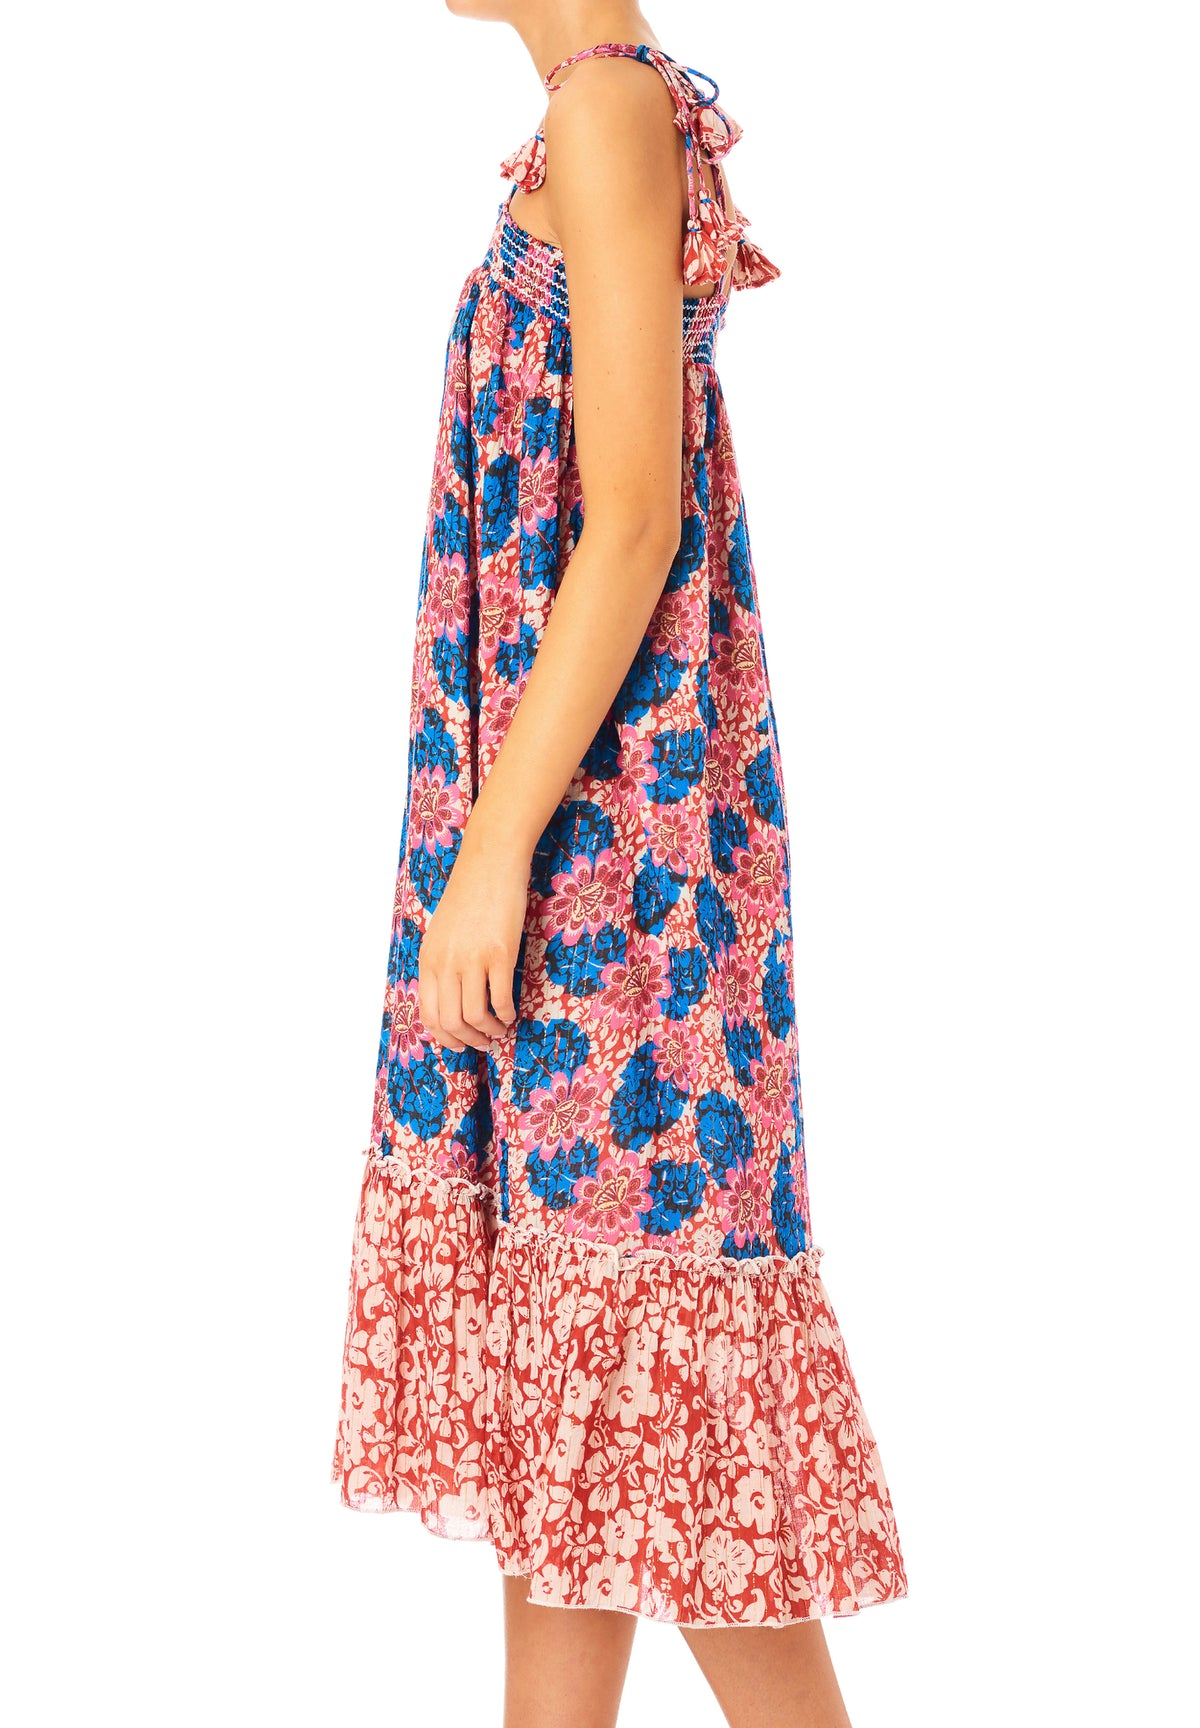 Regina Print Sundress - Multi